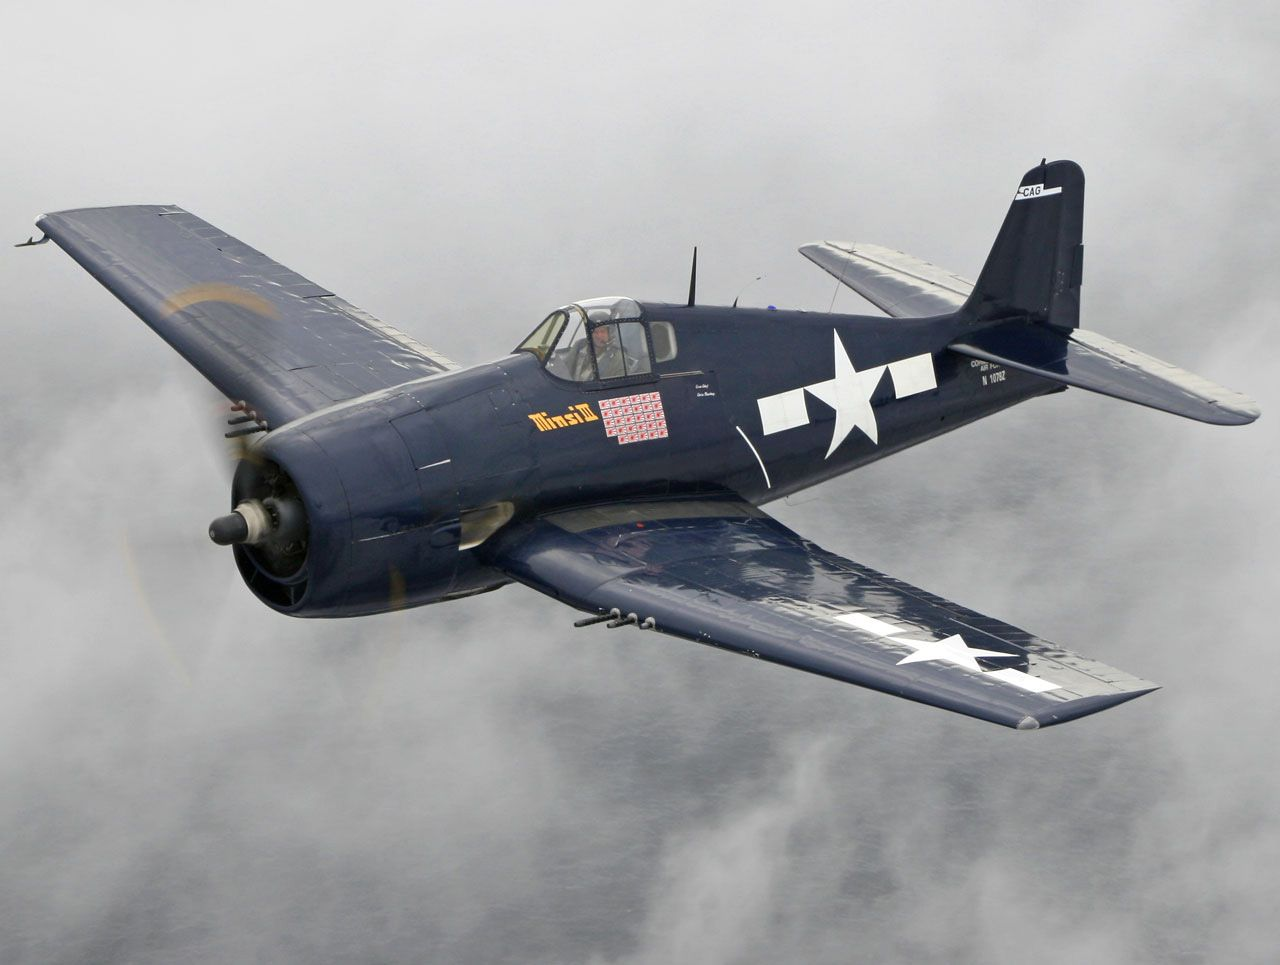 Navy Gruman F6F Hellcat carrier based fighter of WWII. The first model airpane I ever assembled - was one of these.